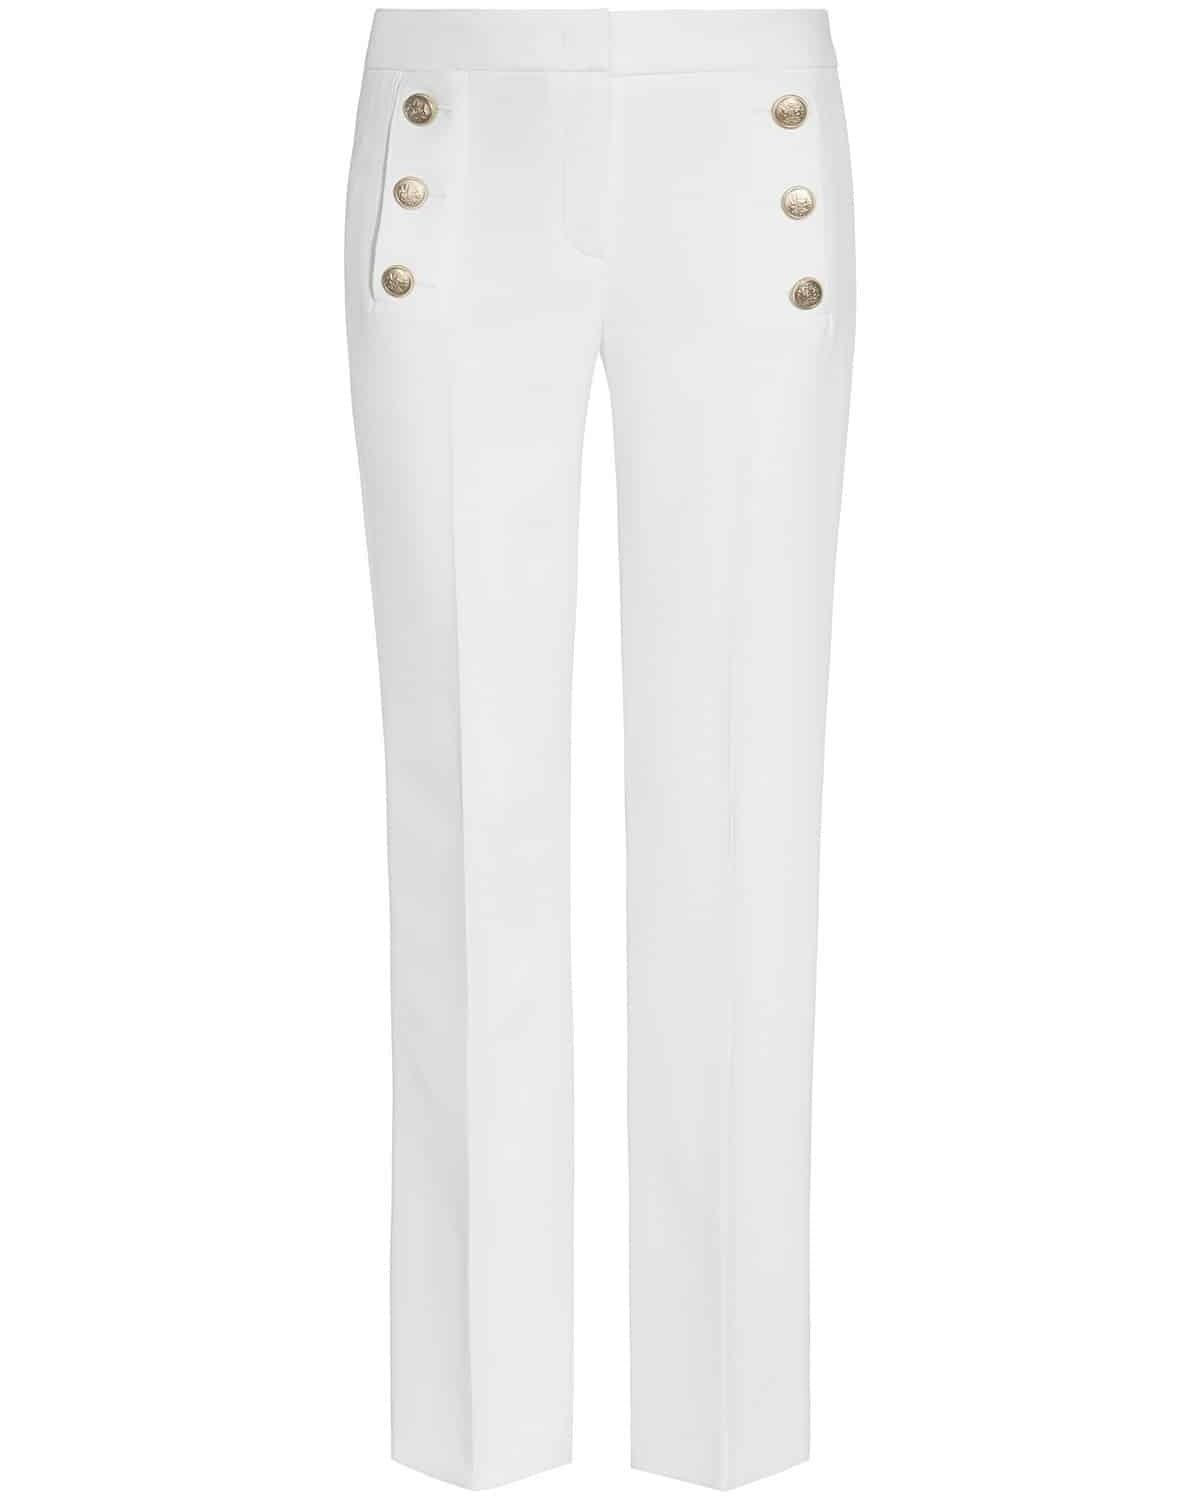 Seductive, Sailor Pants, white, Sailor Style, Lodenfrey, Munich